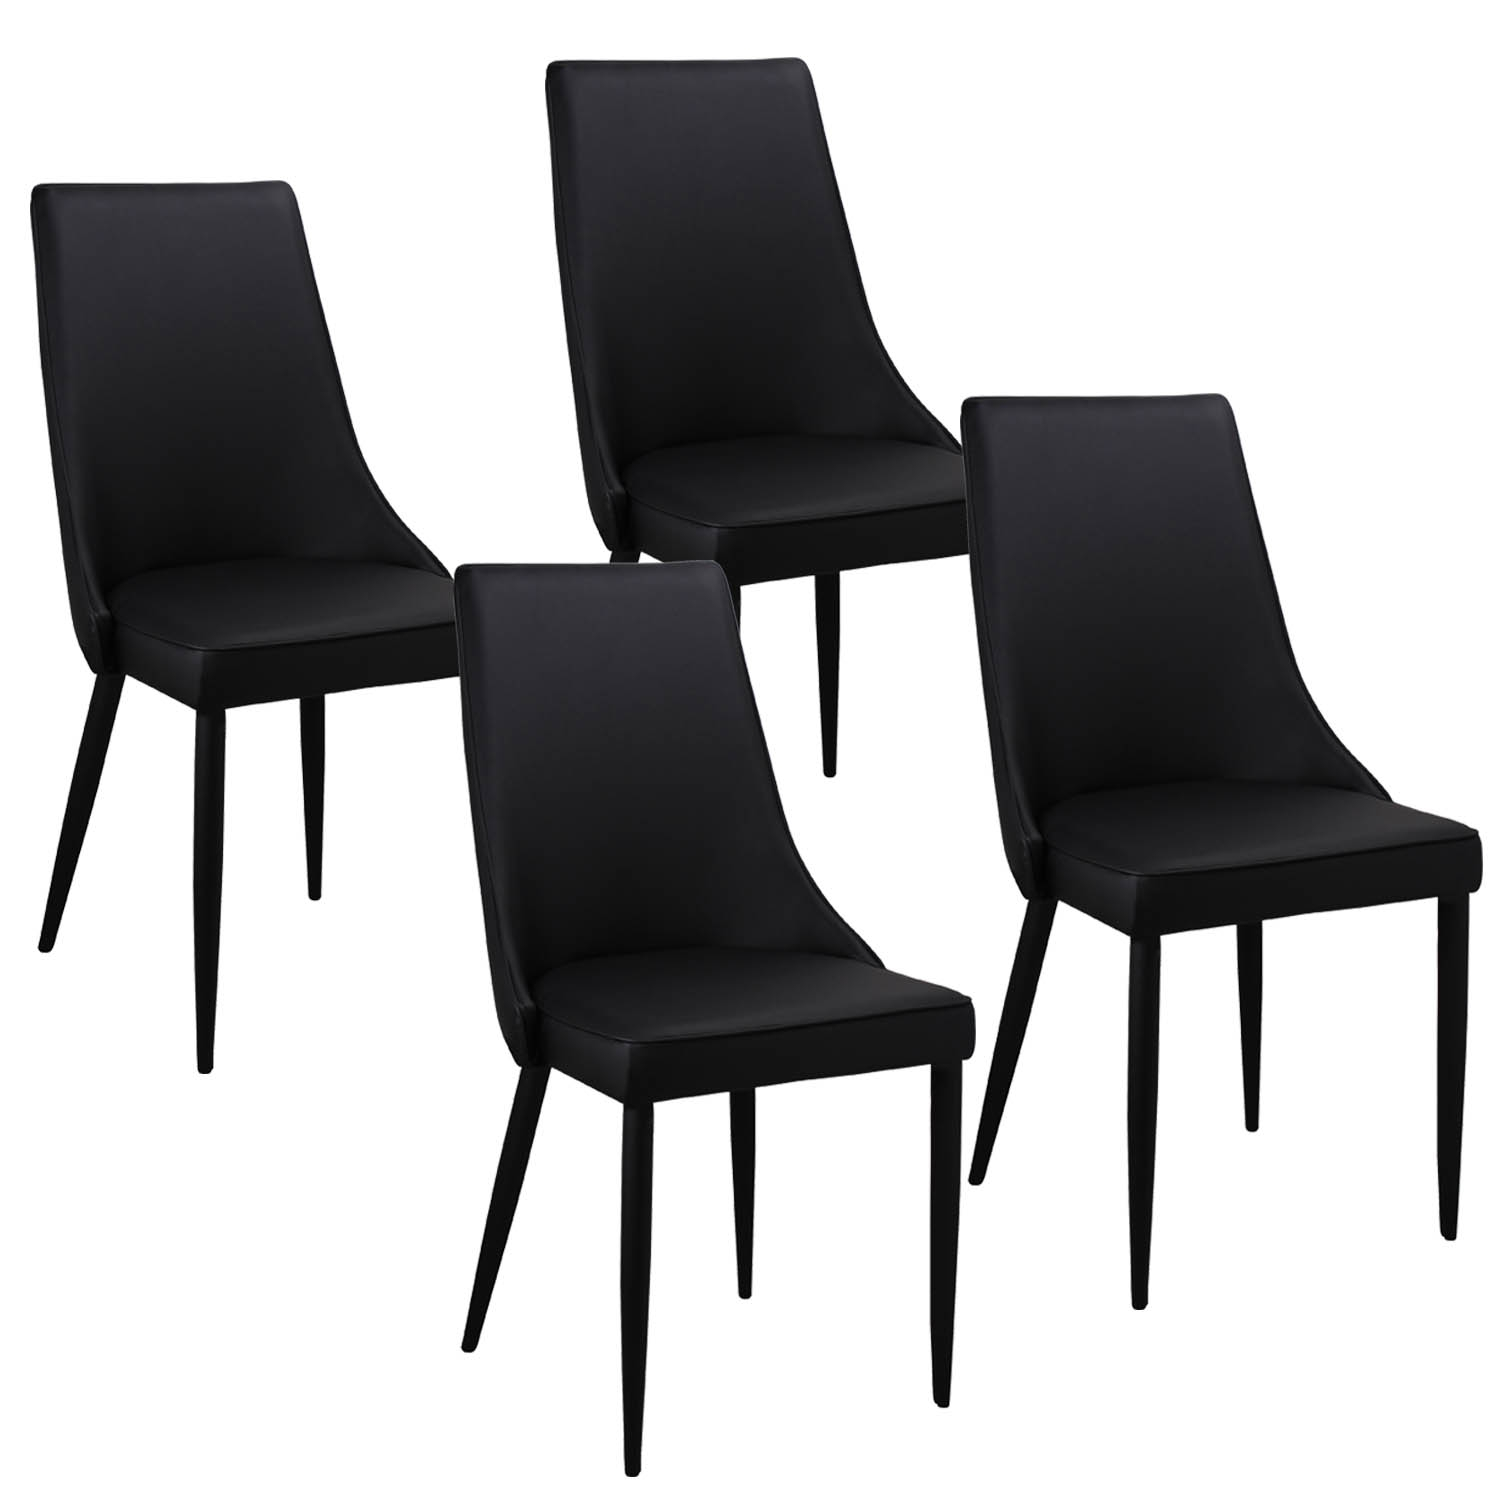 Deco in paris lot de 4 chaises noir avev avev gris noir x4 for Chaise noir design